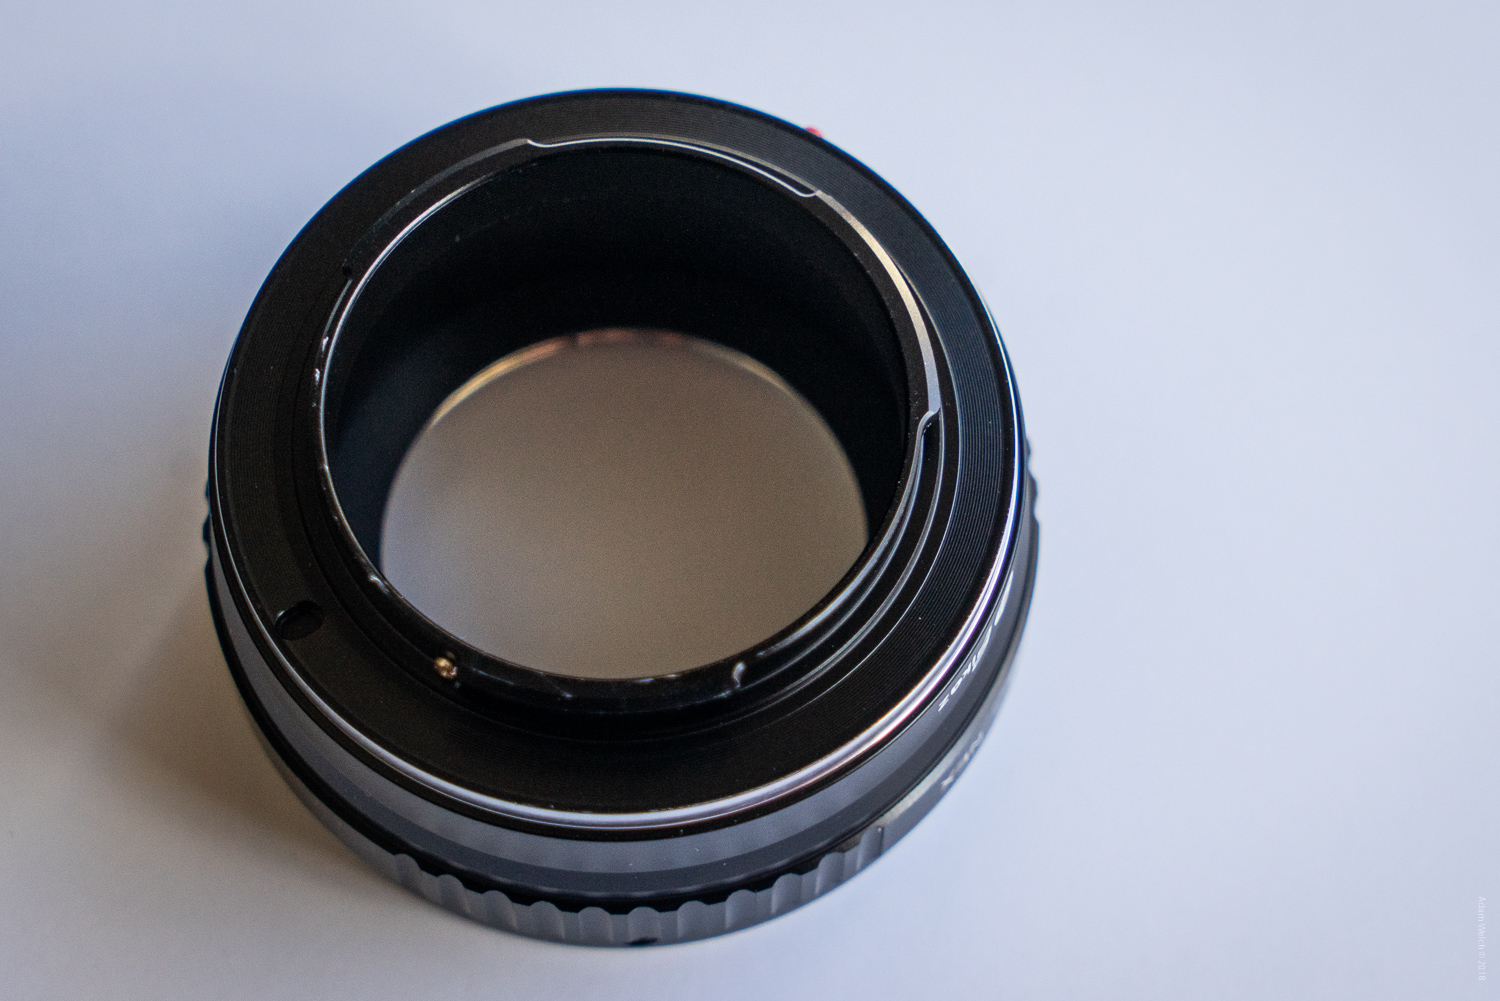 12 - Gear Review - Fikaz Sony E-Mount Lens Adapters